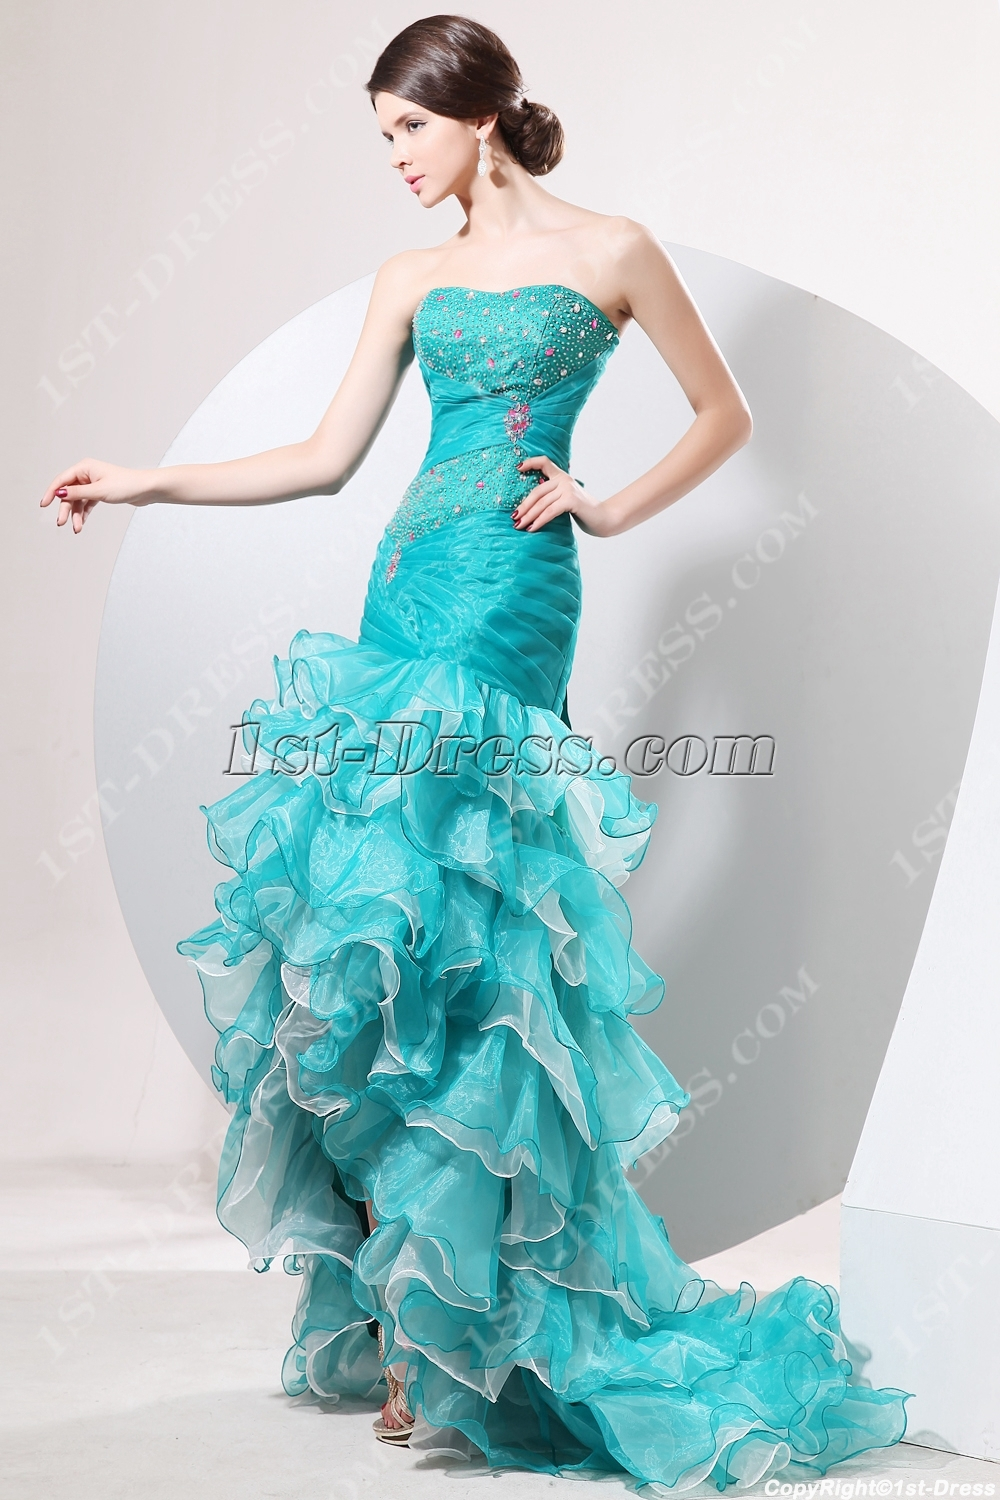 Terrific Teal Blue Mermaid Quinceanera Dress with High-low Hem:1st ...